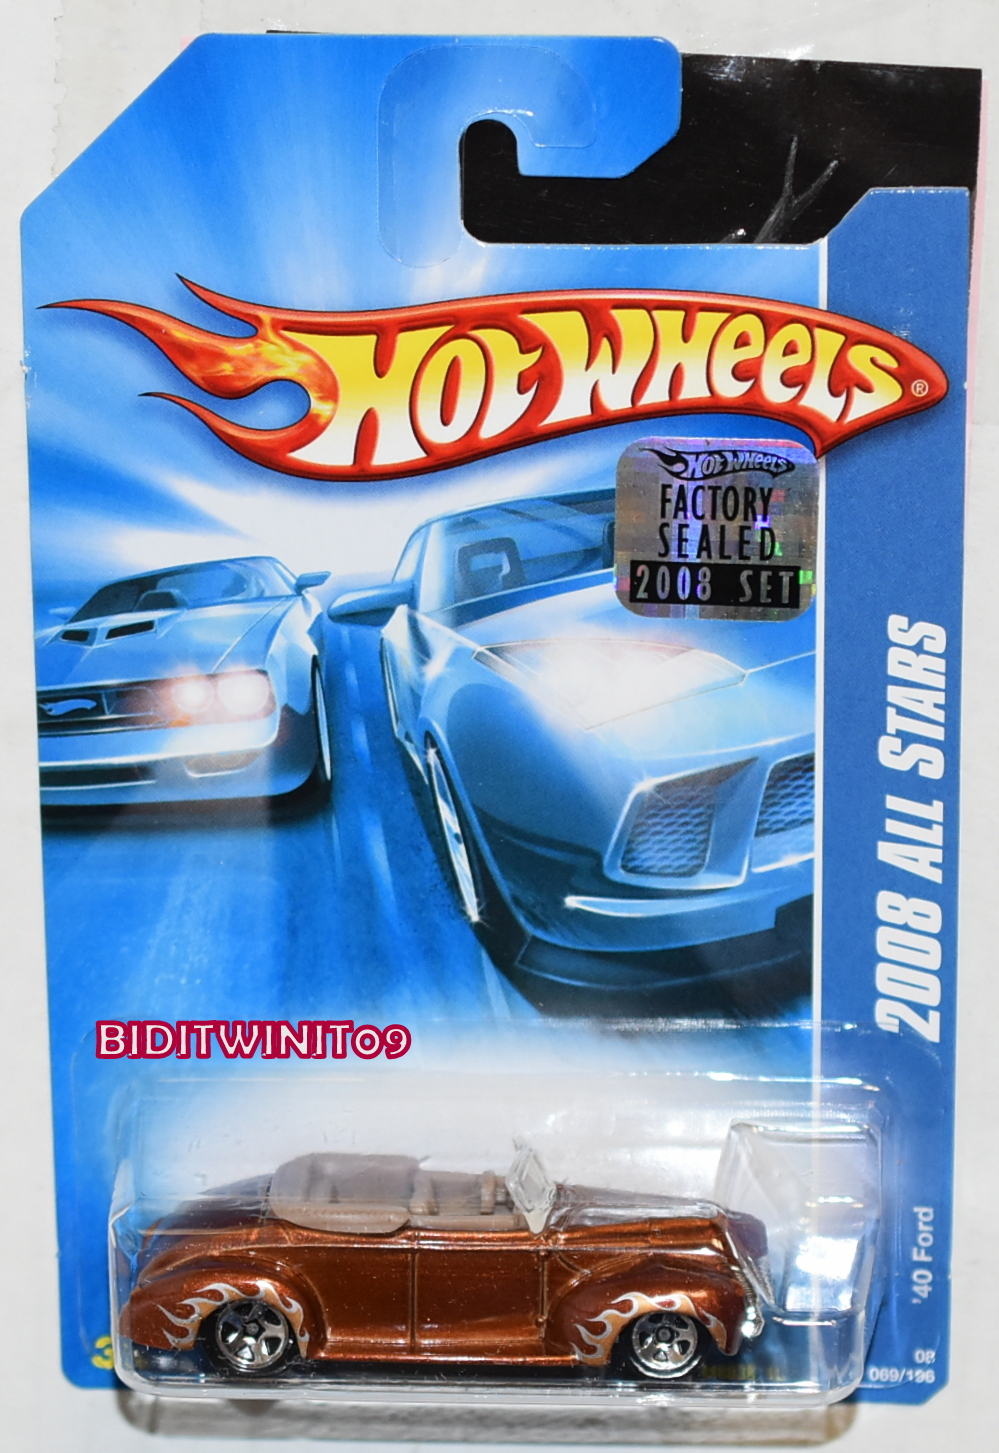 HOT WHEELS 2008 ALL STARS '40 FORD #069/196 BROWN FACTORY SEALED